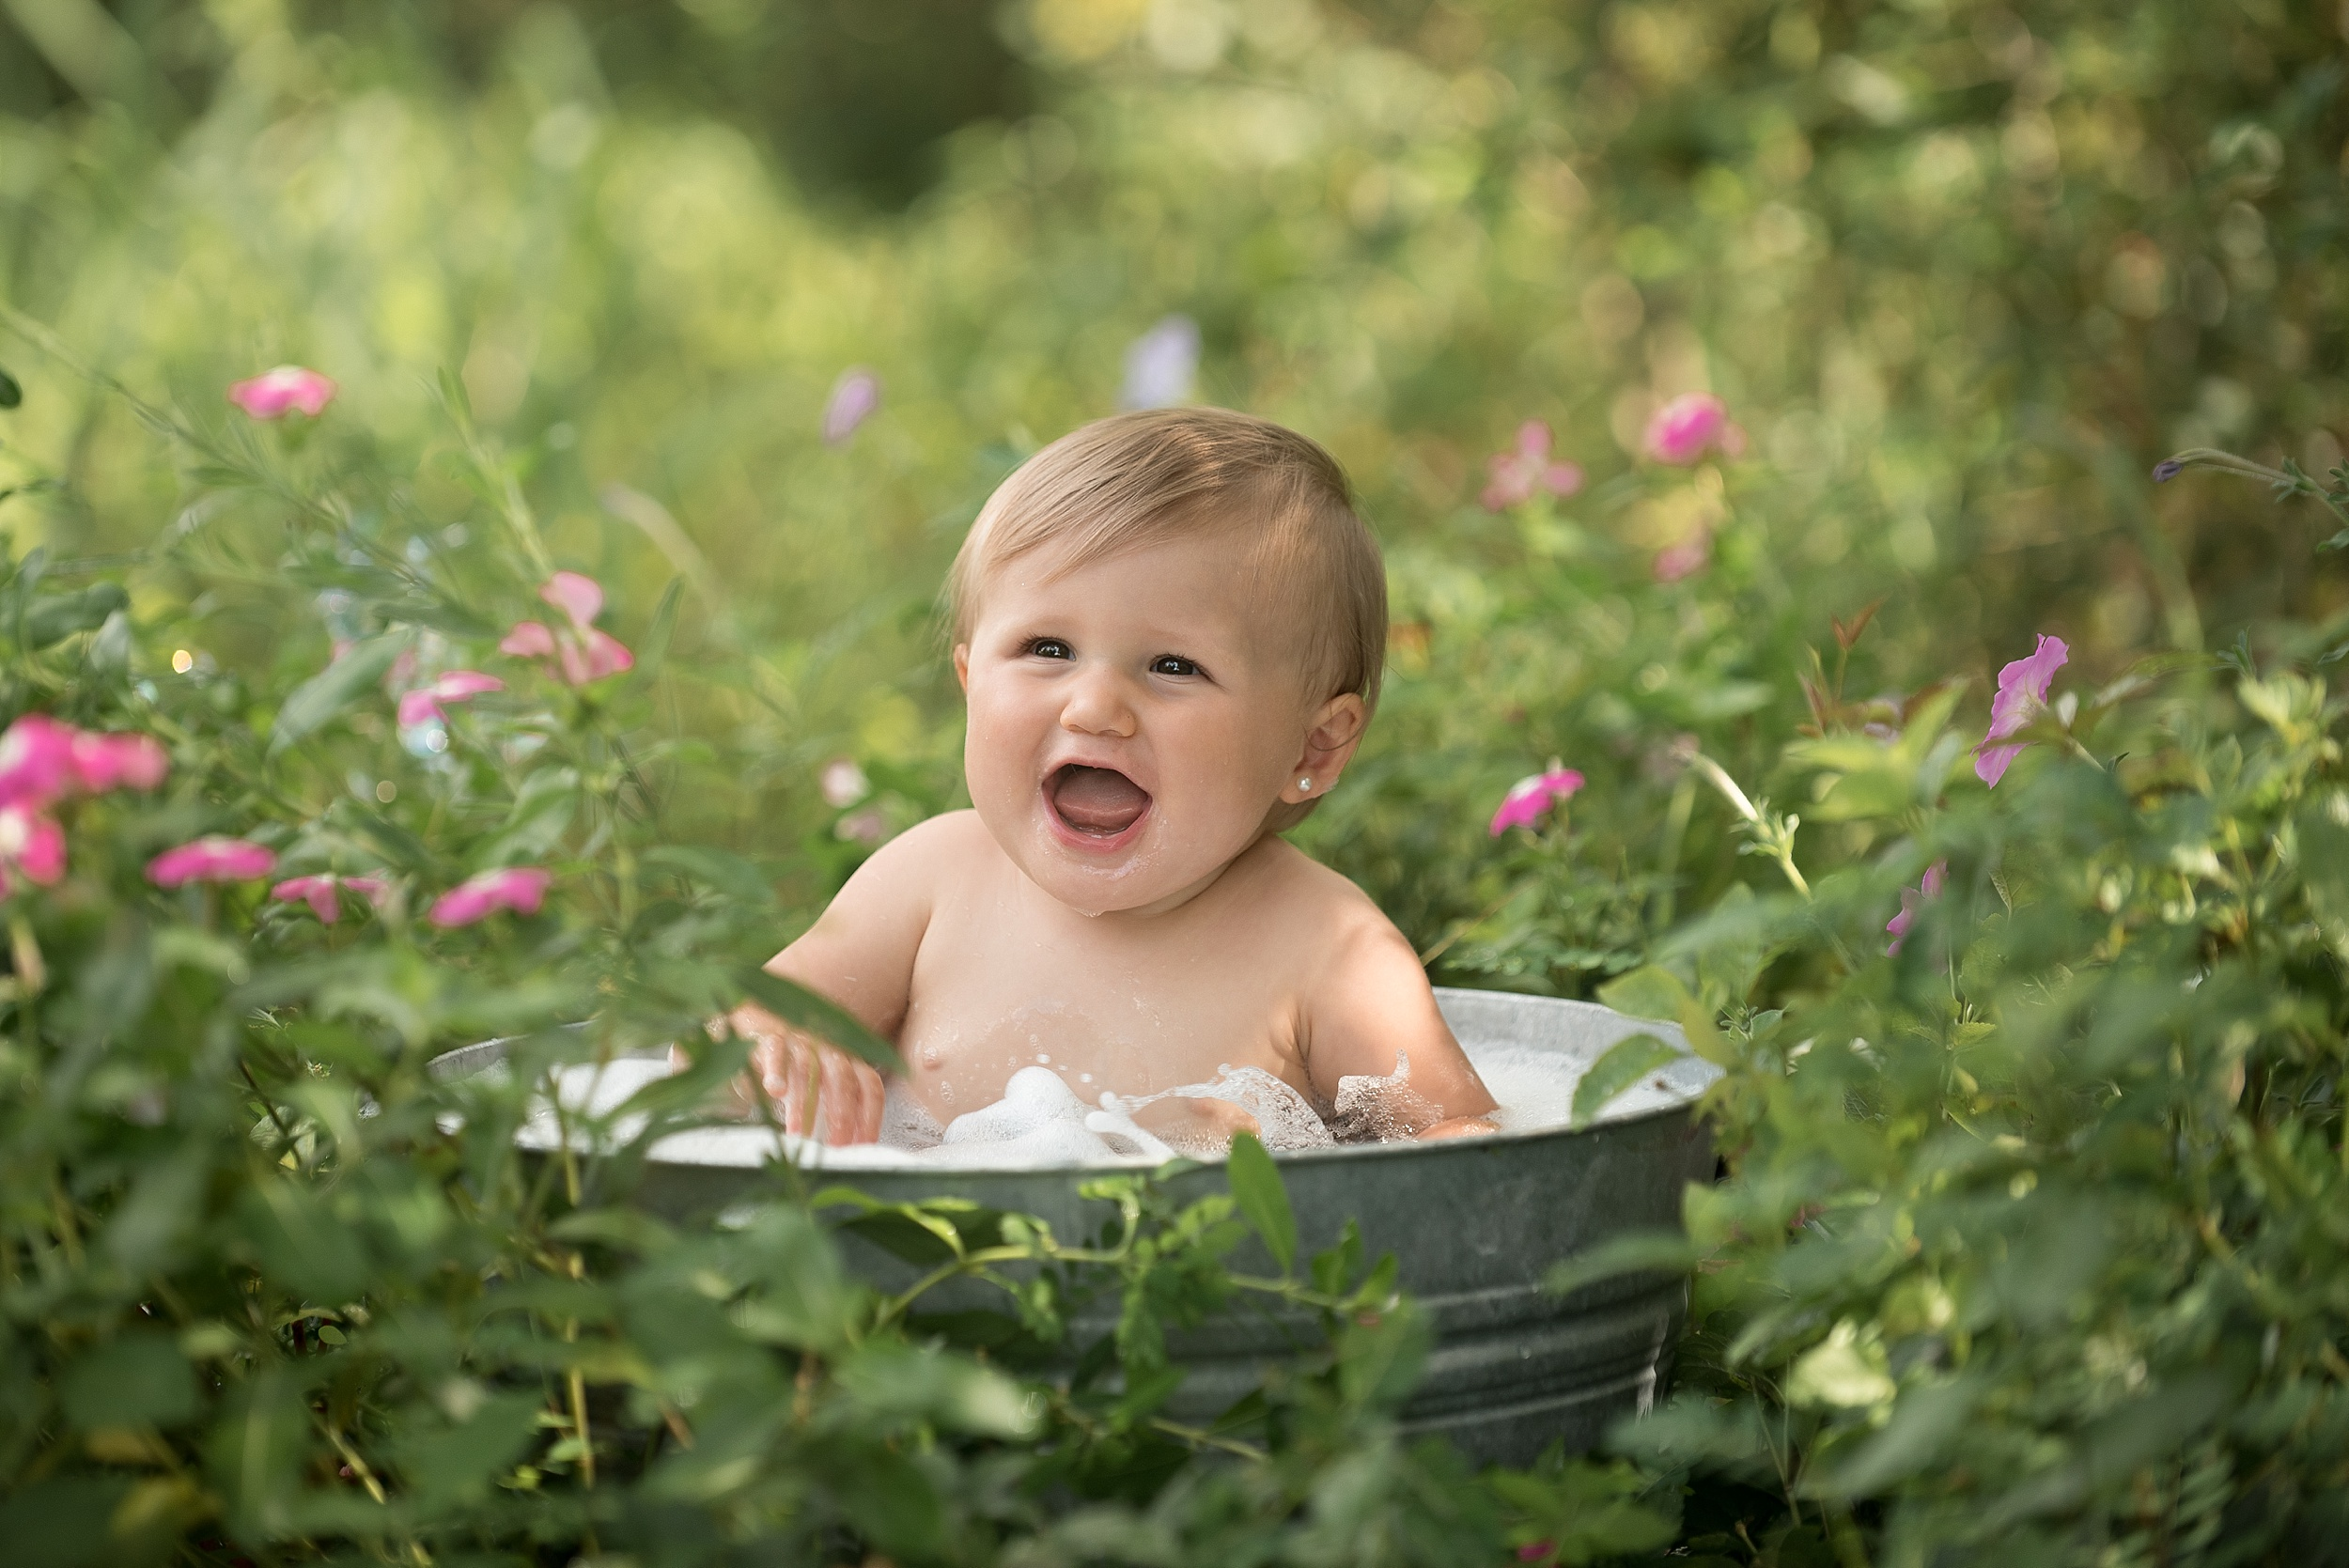 one year old girl splashes in a bubble bath outdoors